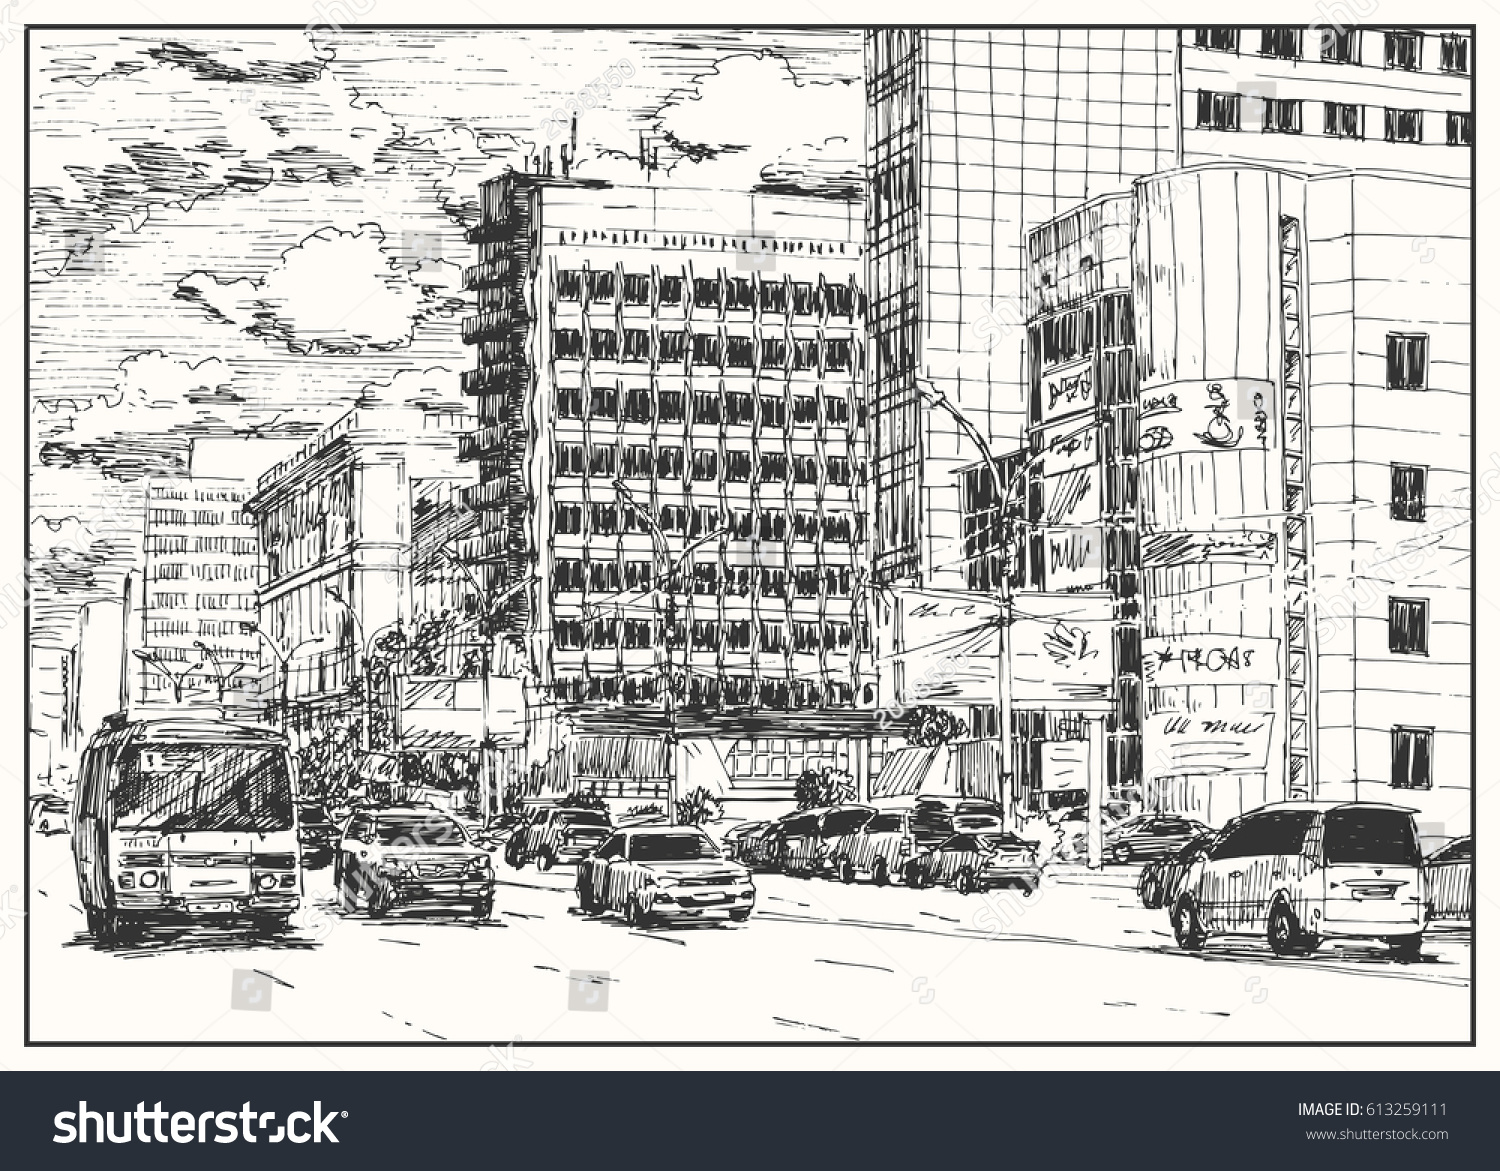 City Street View Traffic Scene Black Stock Vector HD (Royalty Free ...